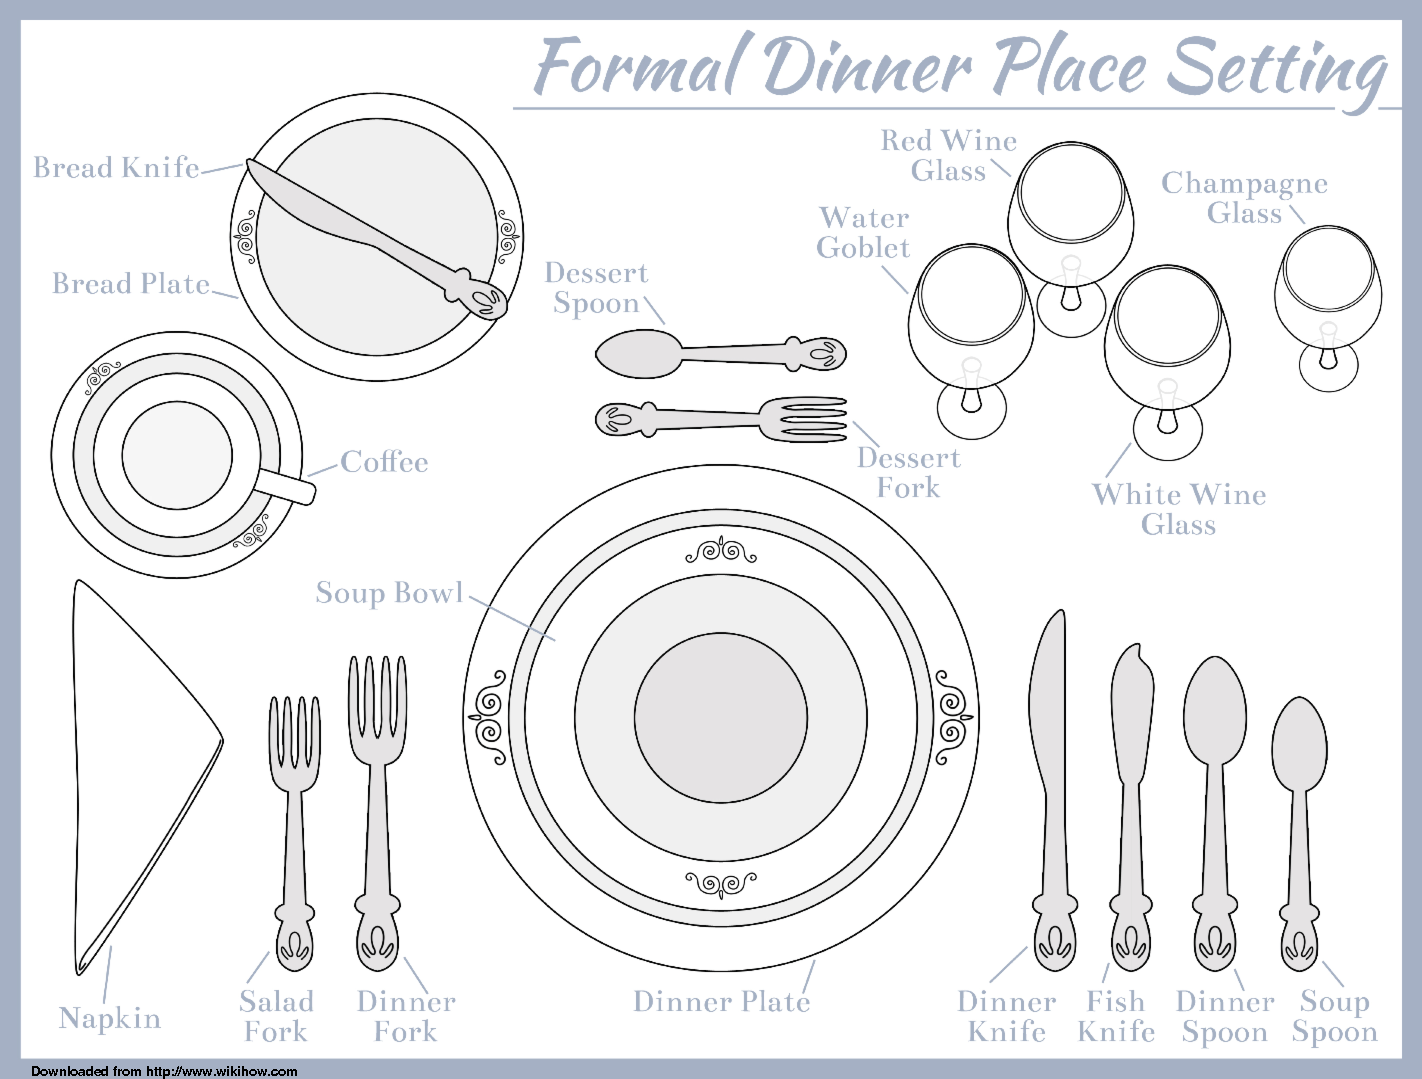 place setting template for seven course meal [ 1422 x 1079 Pixel ]